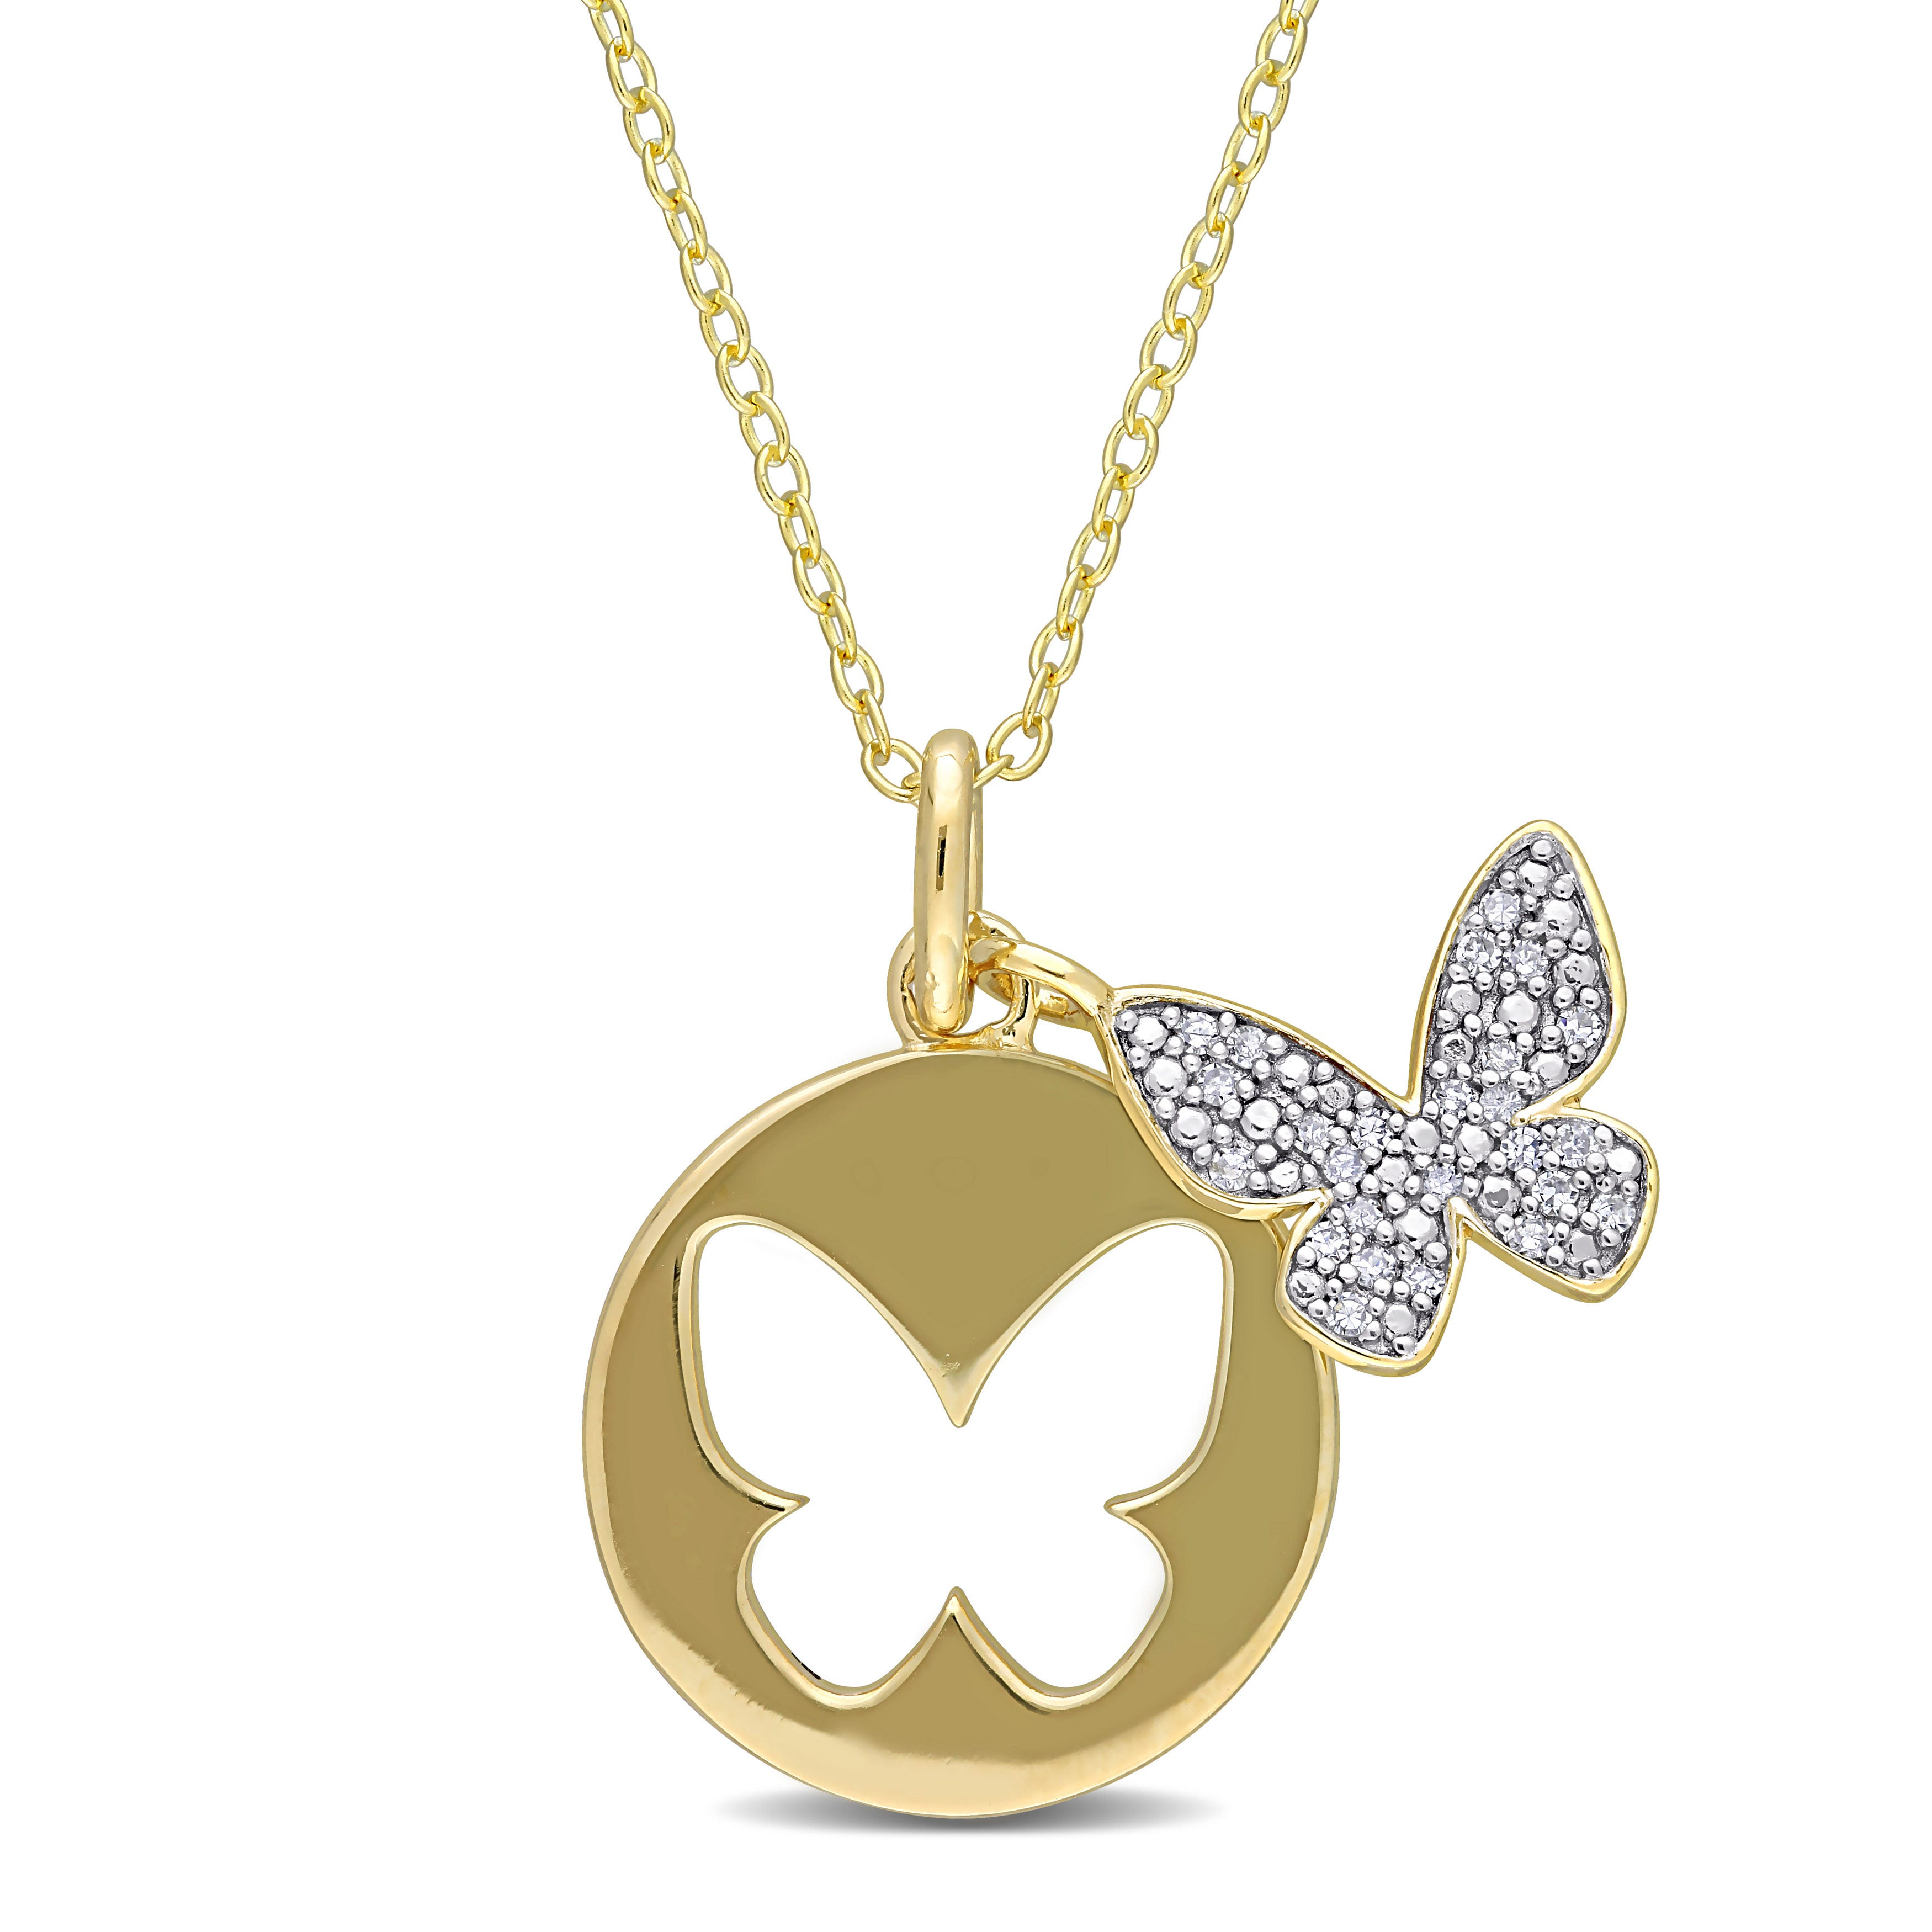 Ladies Sterling Silver with Yellow and White Lab Moissanite Gem Butterfly Necklace.